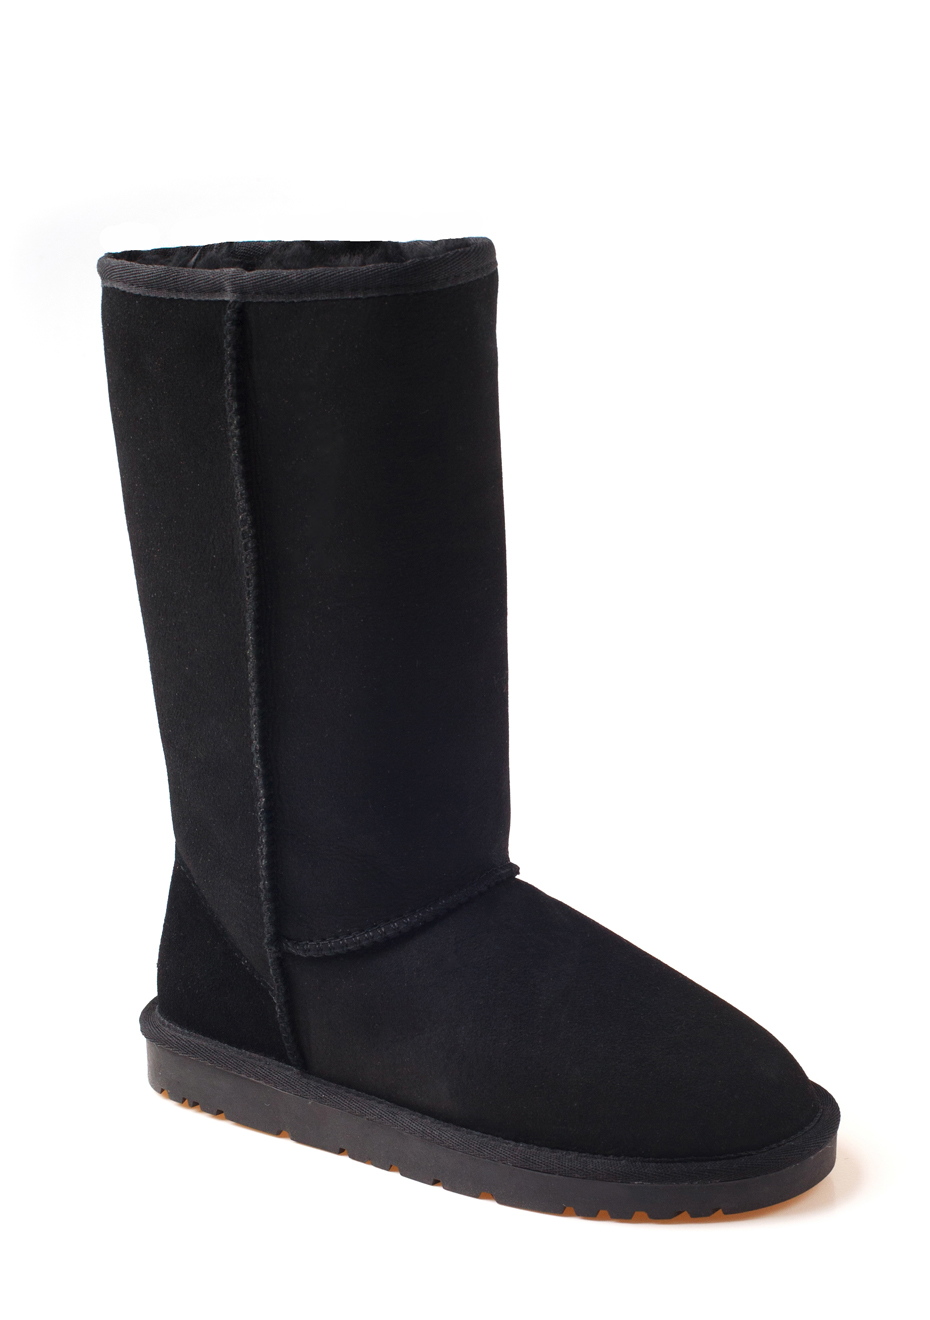 Ozwear - Ugg Classic Long Boots (Water Resistant) - Black